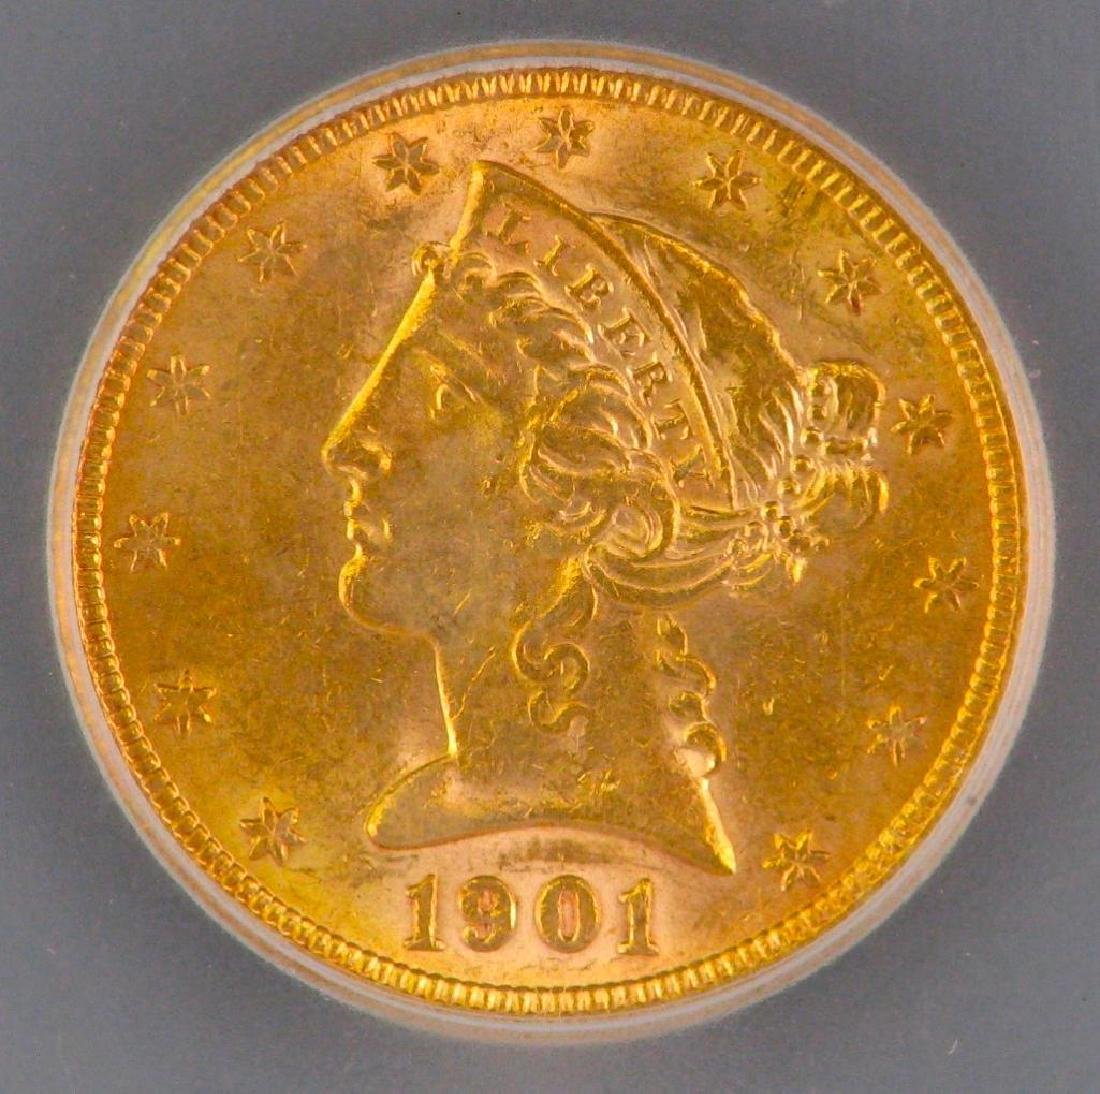 1901 Liberty Head $5 Gold Piece - 3